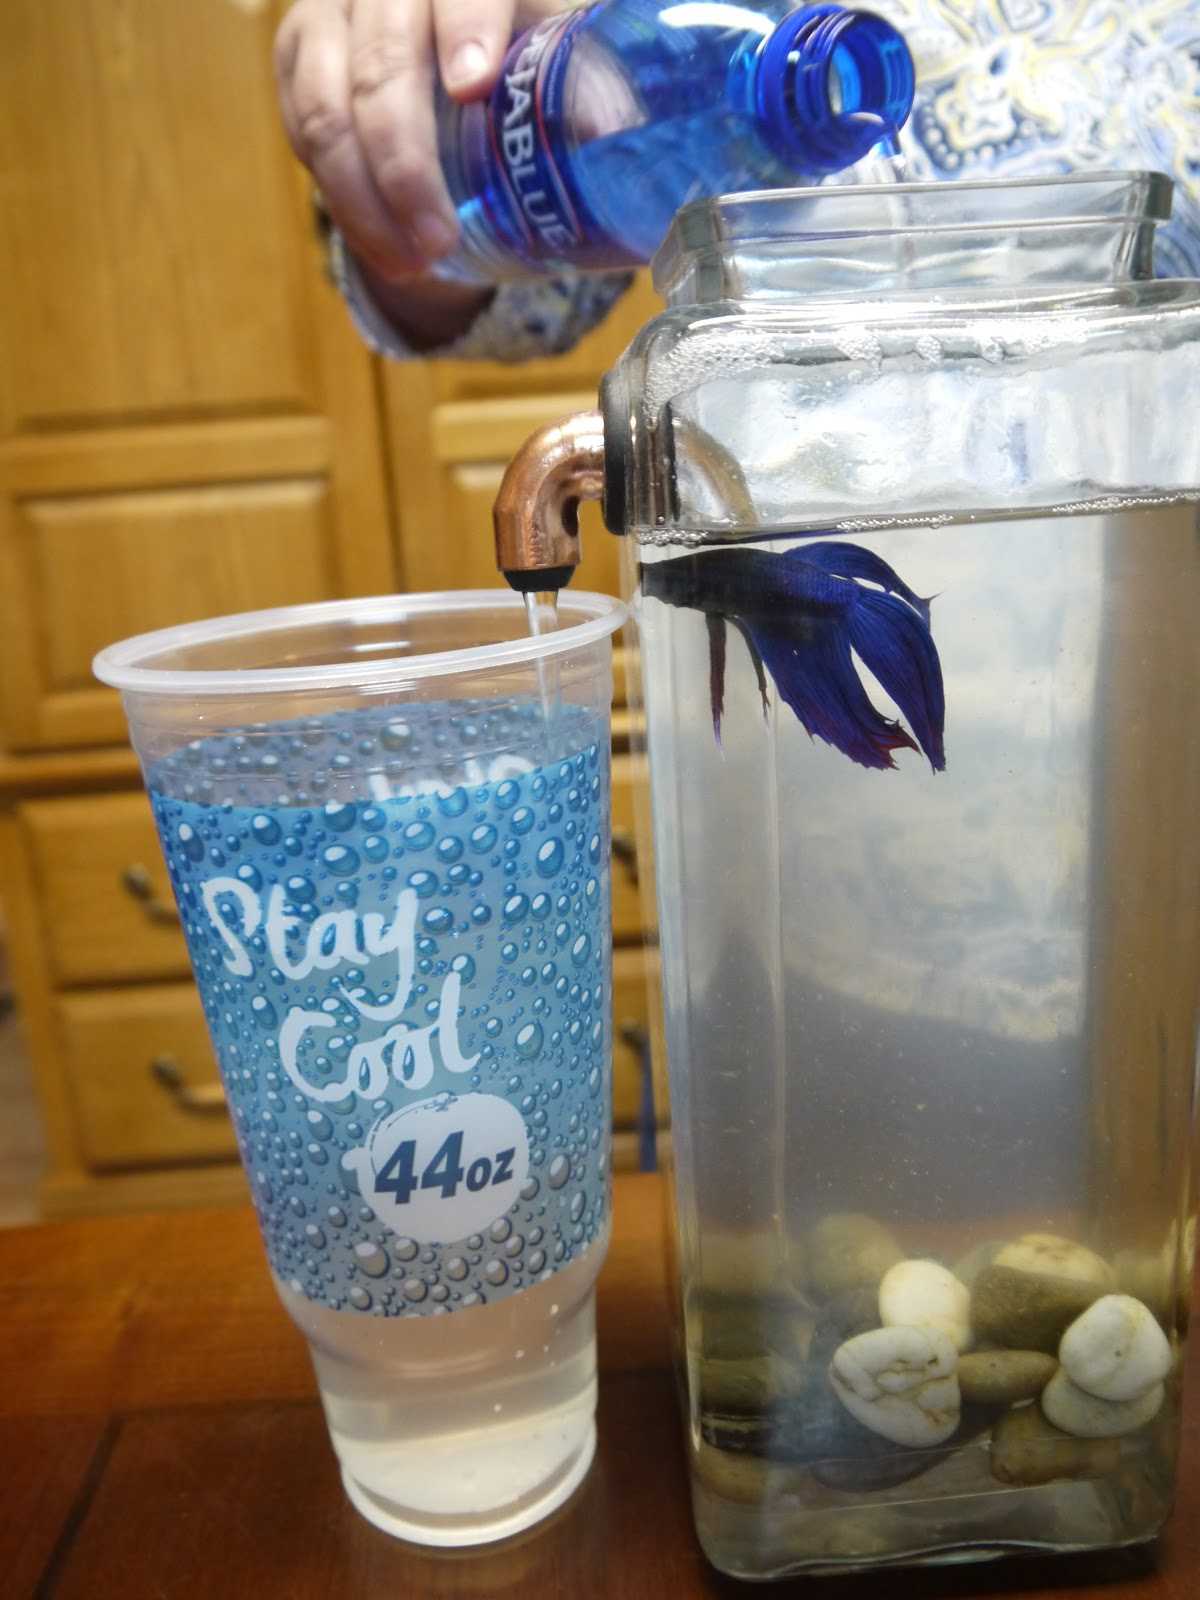 No clean aquarium betta fish tank - Here S A Video So You Can See The Noclean In Action